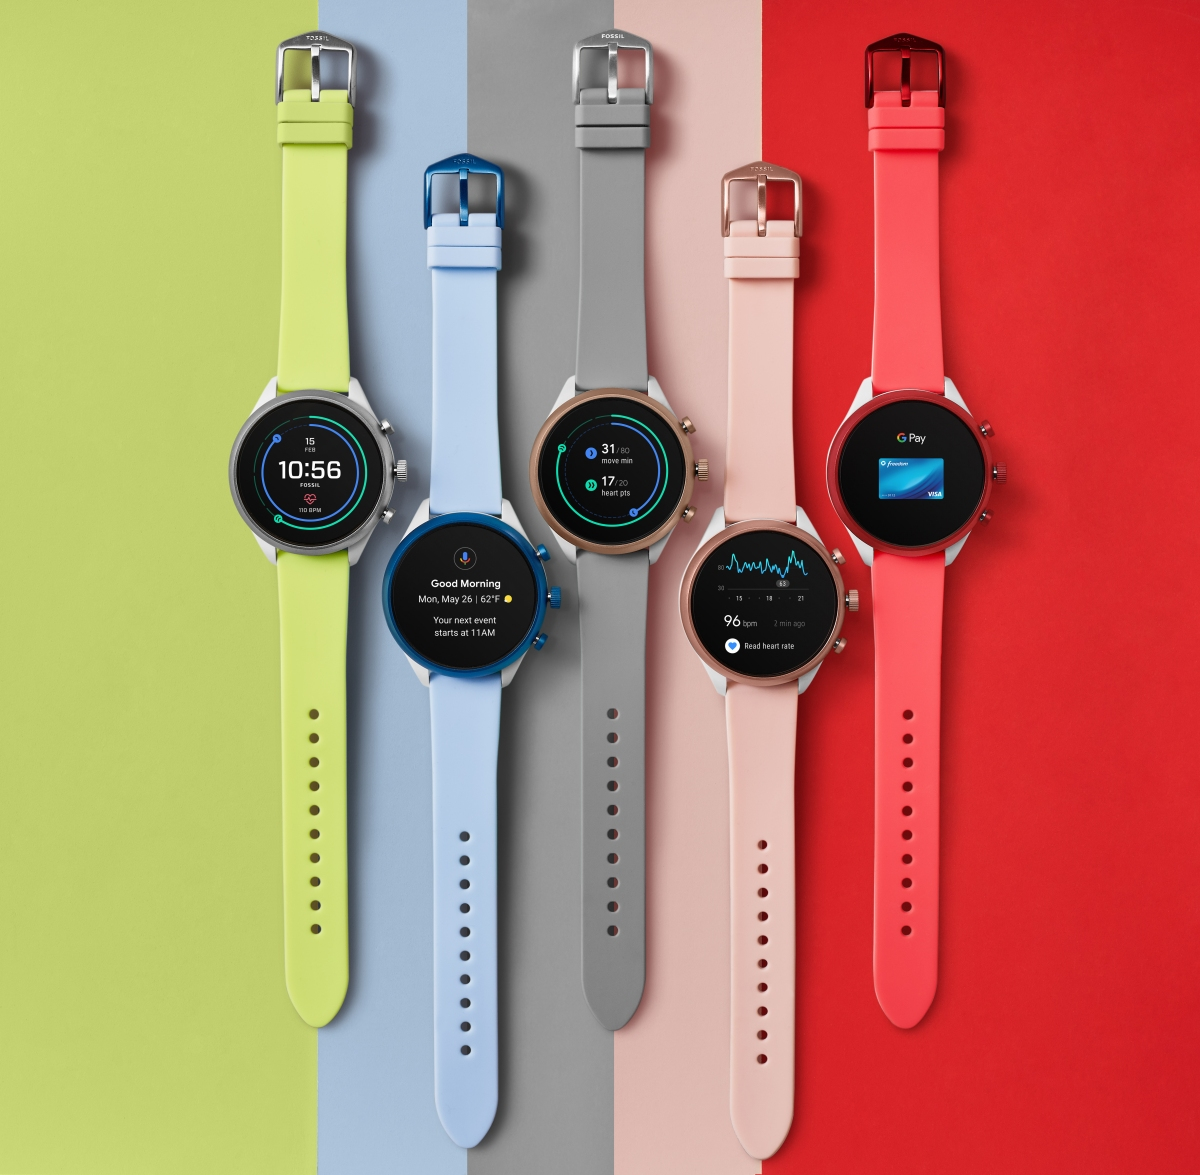 Fossil launches Sport Smartwatch powered by Snapdragon Wear 3100 platform and Wear OS